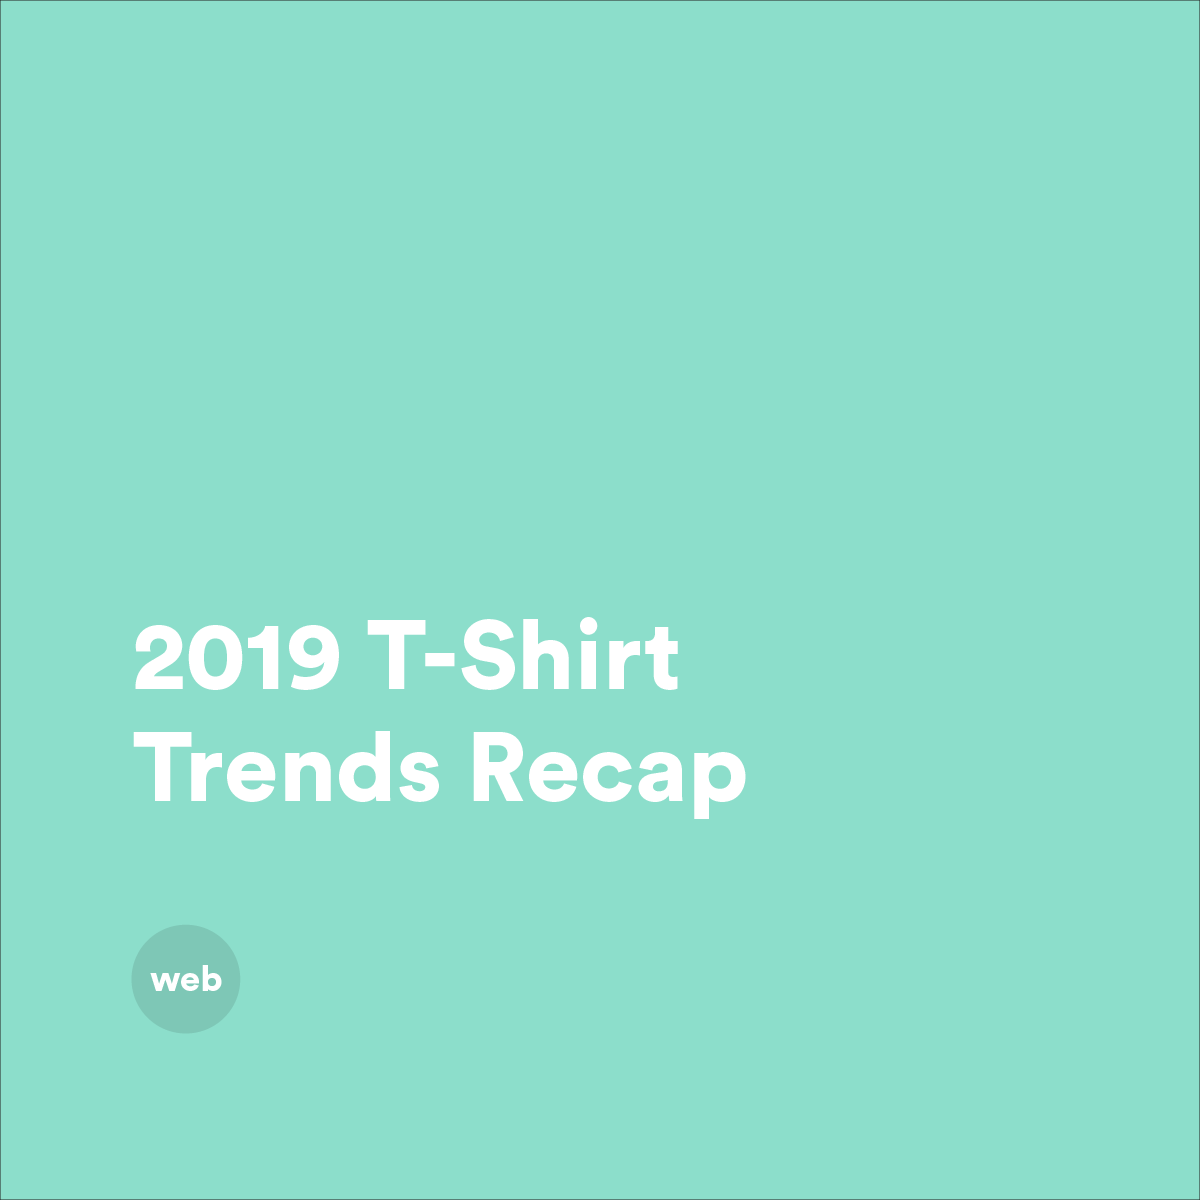 Pillar: 2019 T-Shirt Recap